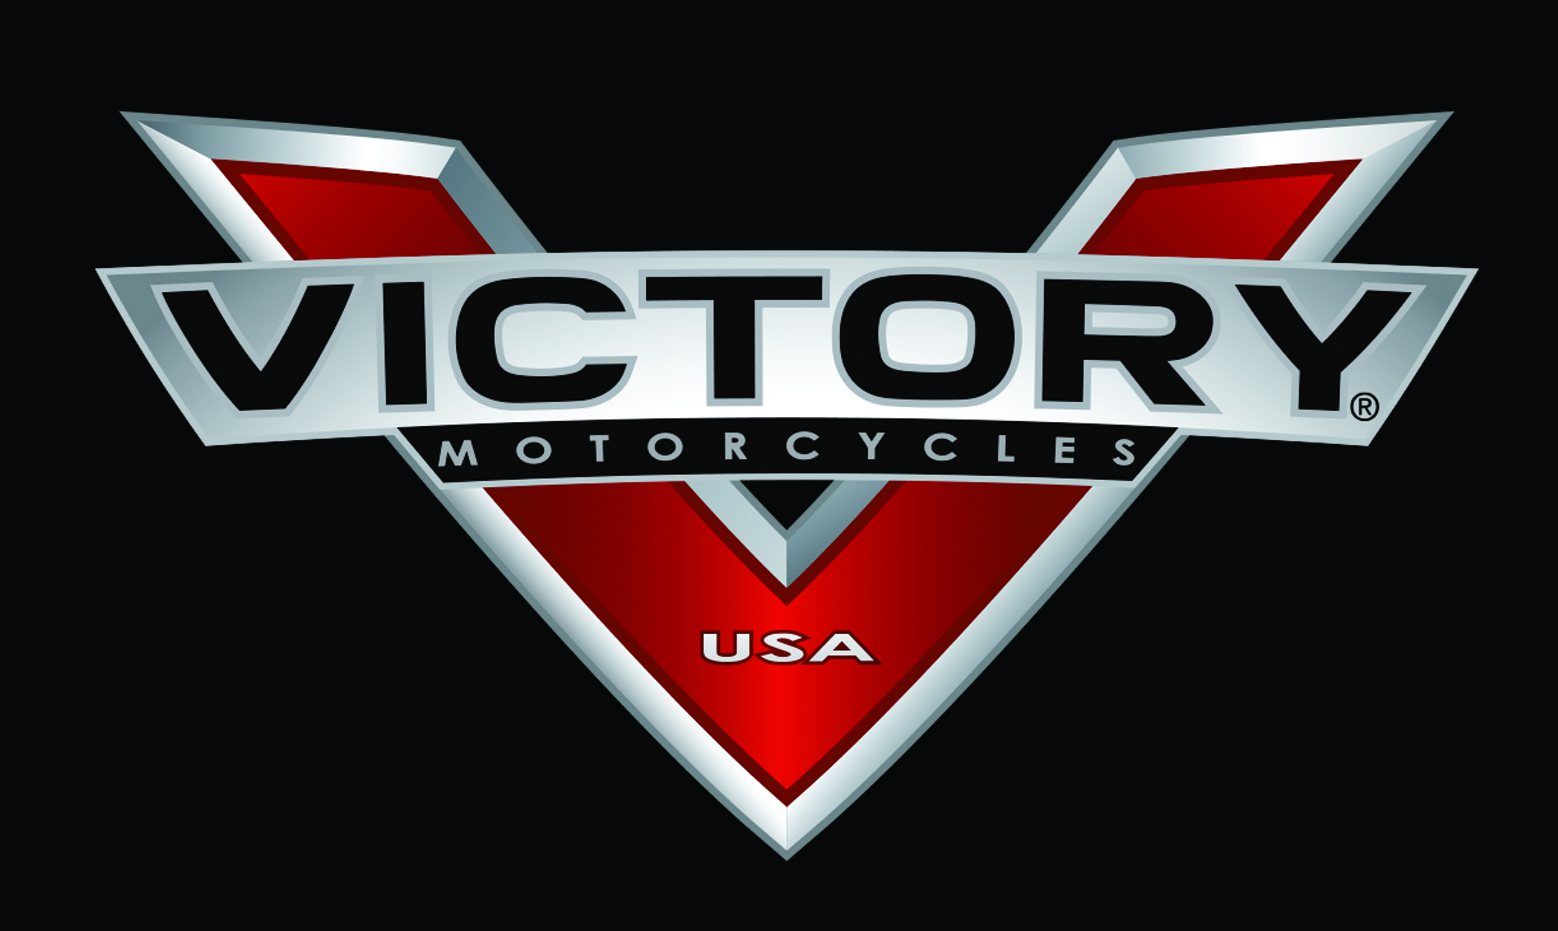 Victory Motorcycles Reveal Striking International Line Up for 2015 1558x931